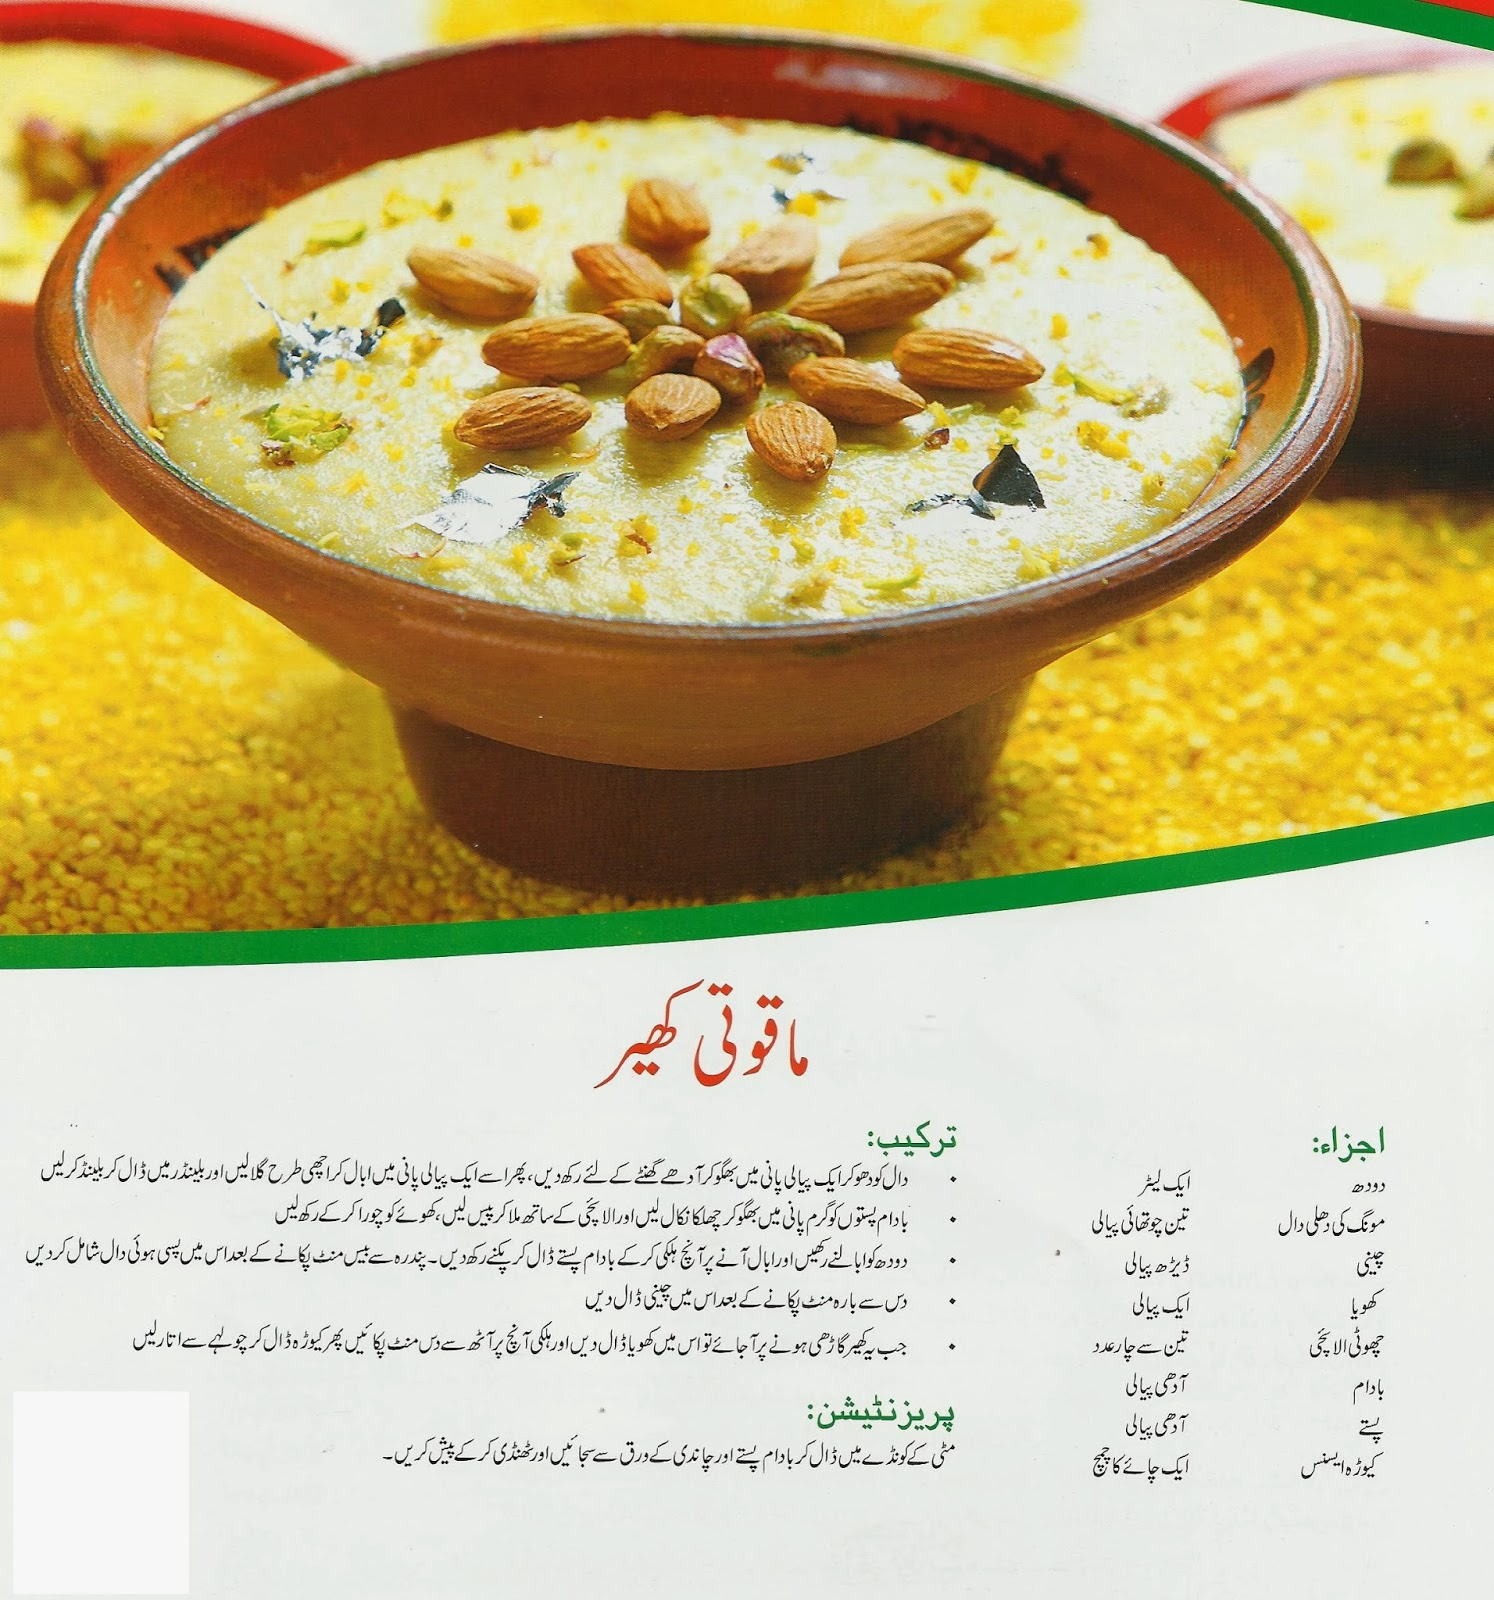 Coking Philospher: A New Pakistani Cooking Sweet Dish